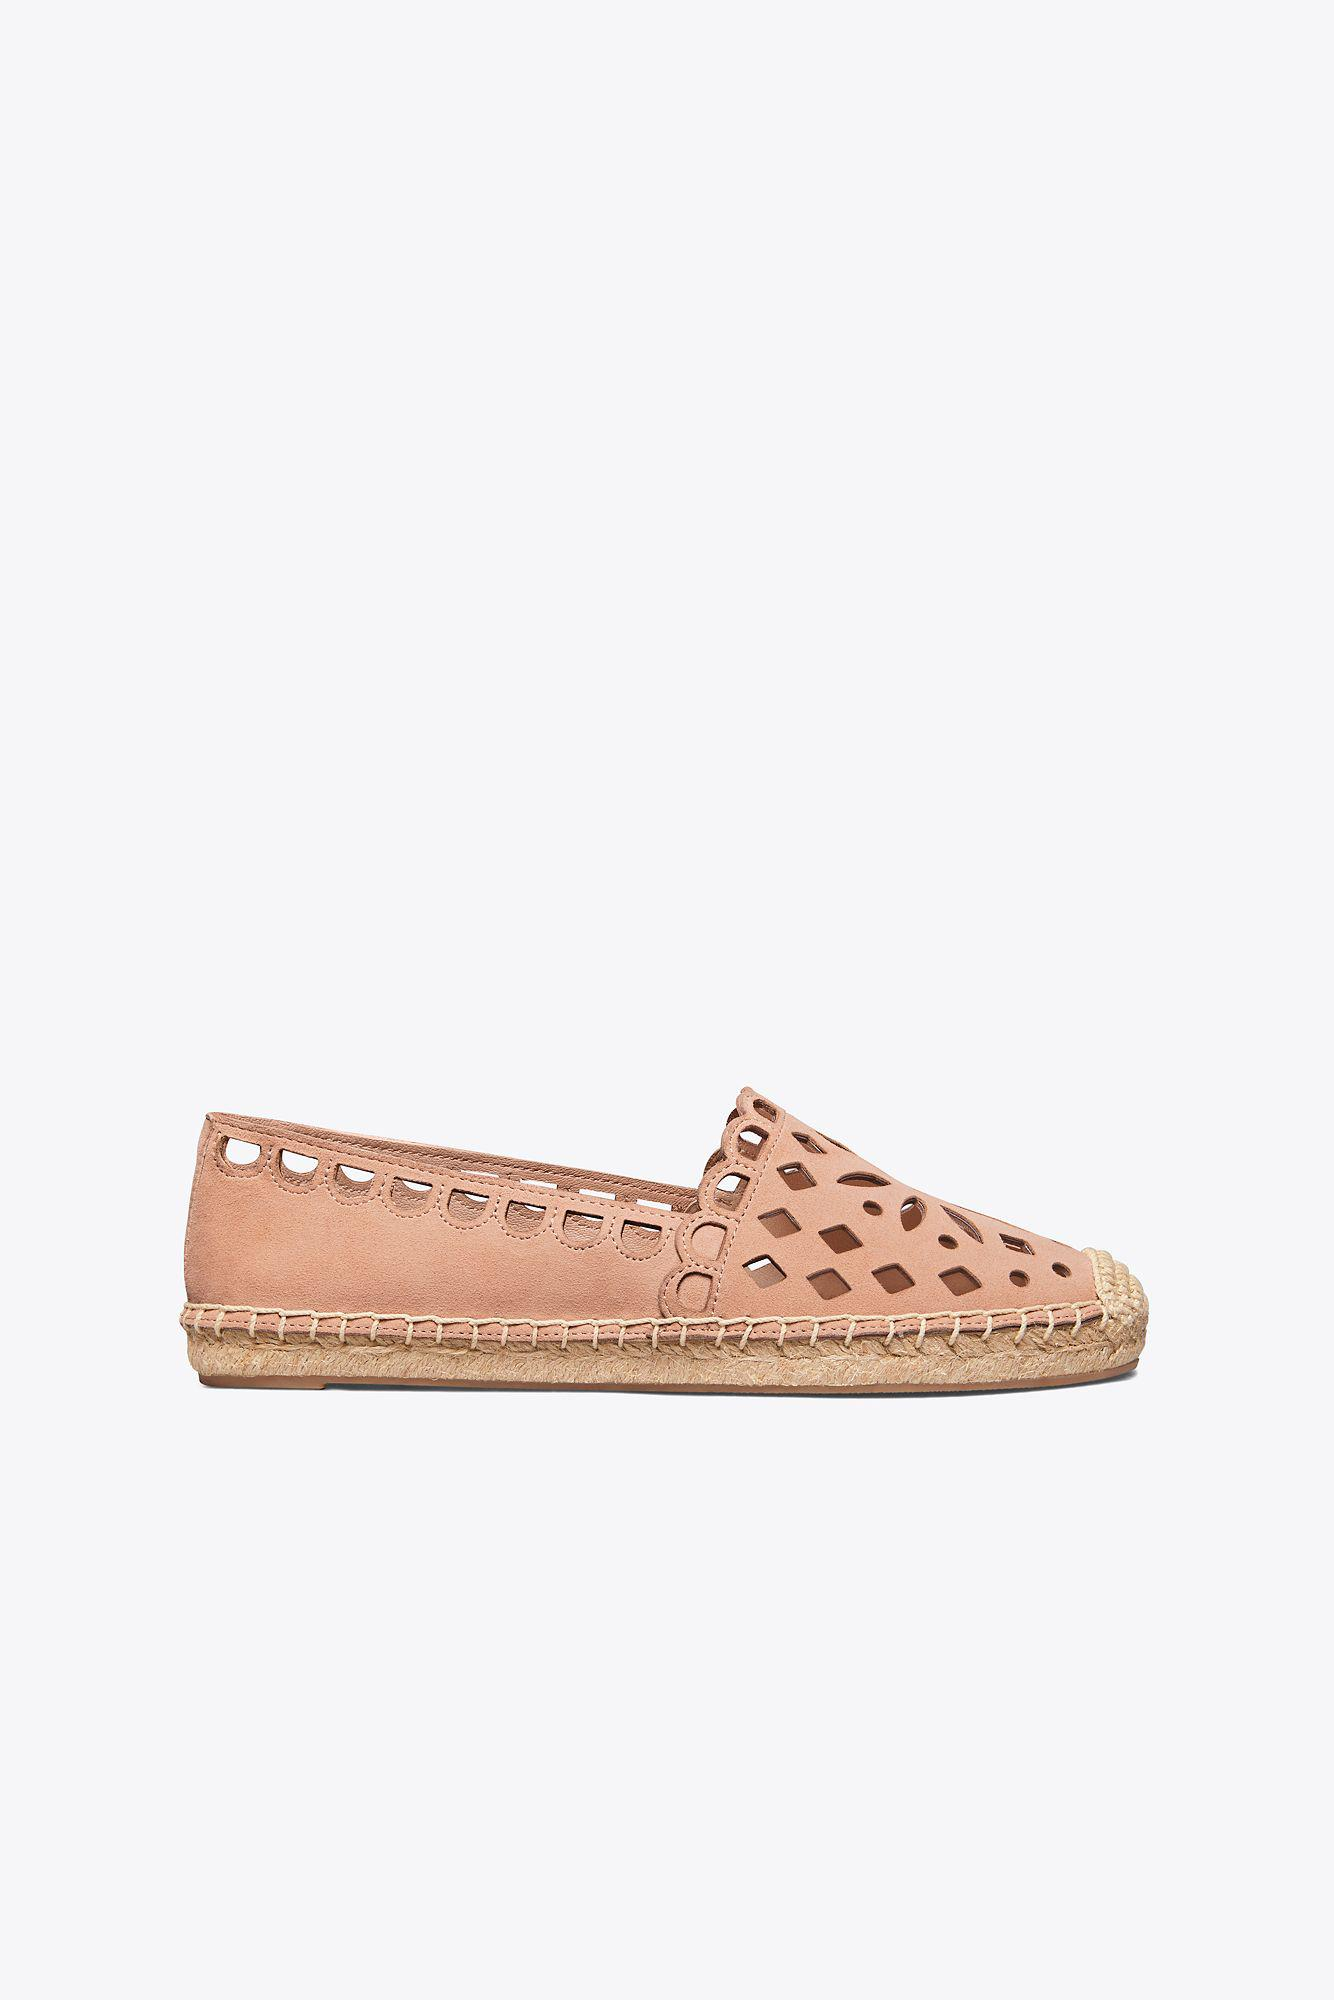 MAY ESPADRILLE 278 Desert Blush PERFECT NAVY Pink Magnolia DUSTY CASSIA sale affordable 100% authentic cheap brand new unisex yOSp40WyL